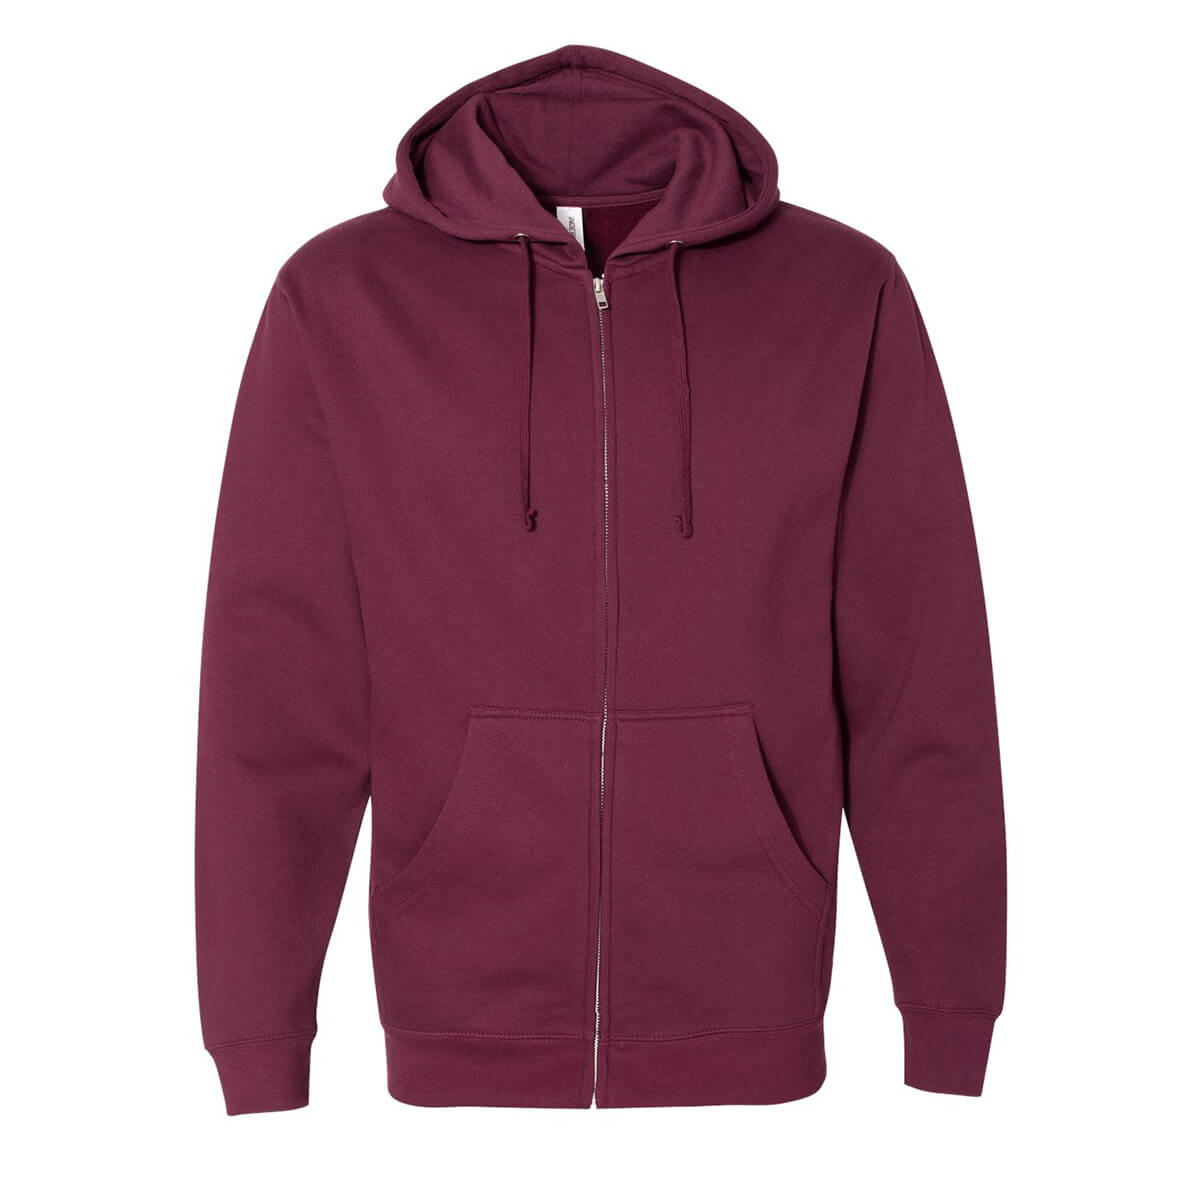 Independent Trading Midweight Full-Zip Hoodie